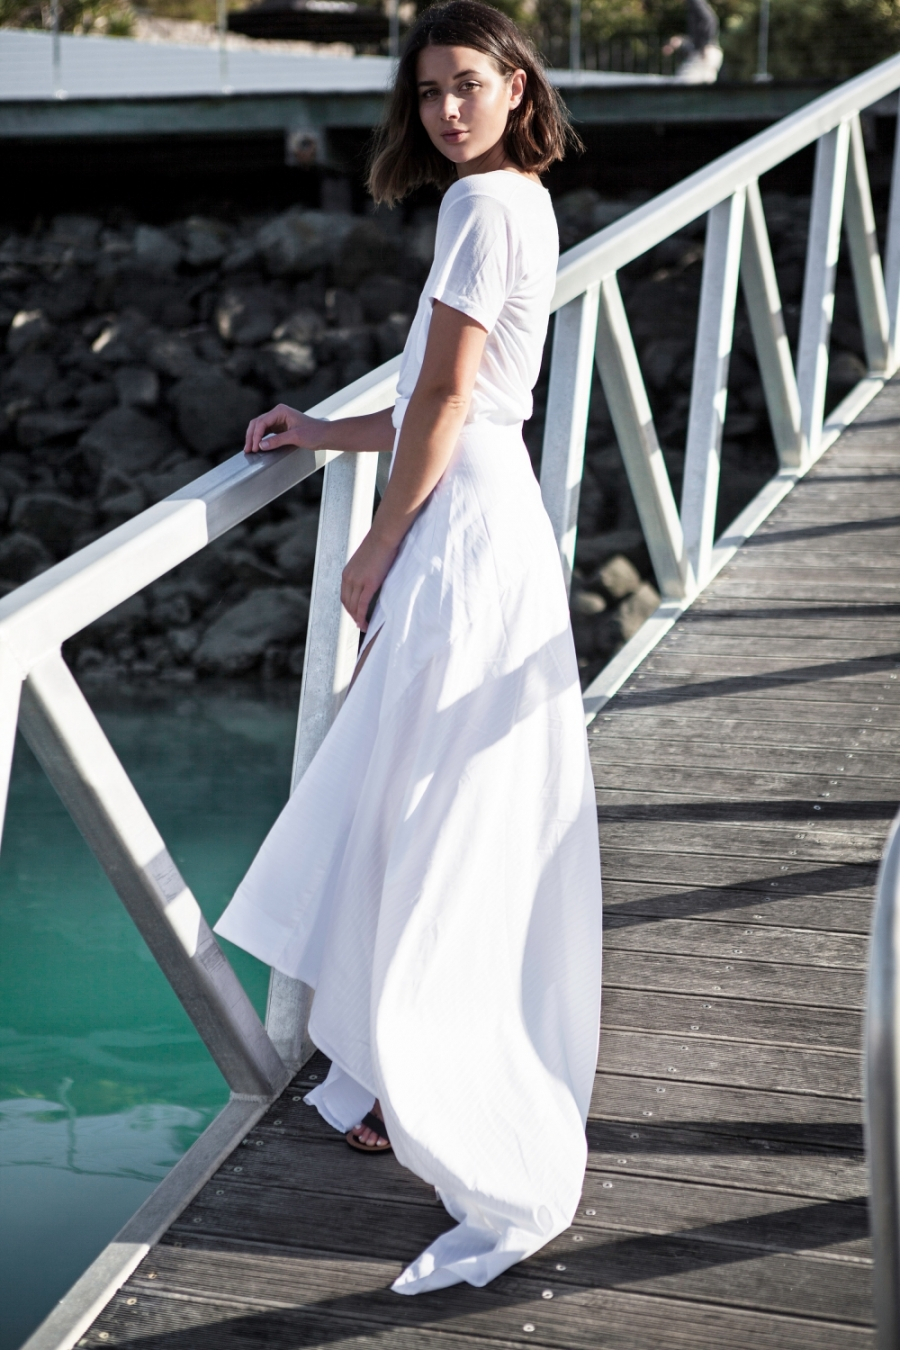 White Maxi Skirt Outfit - Skirts